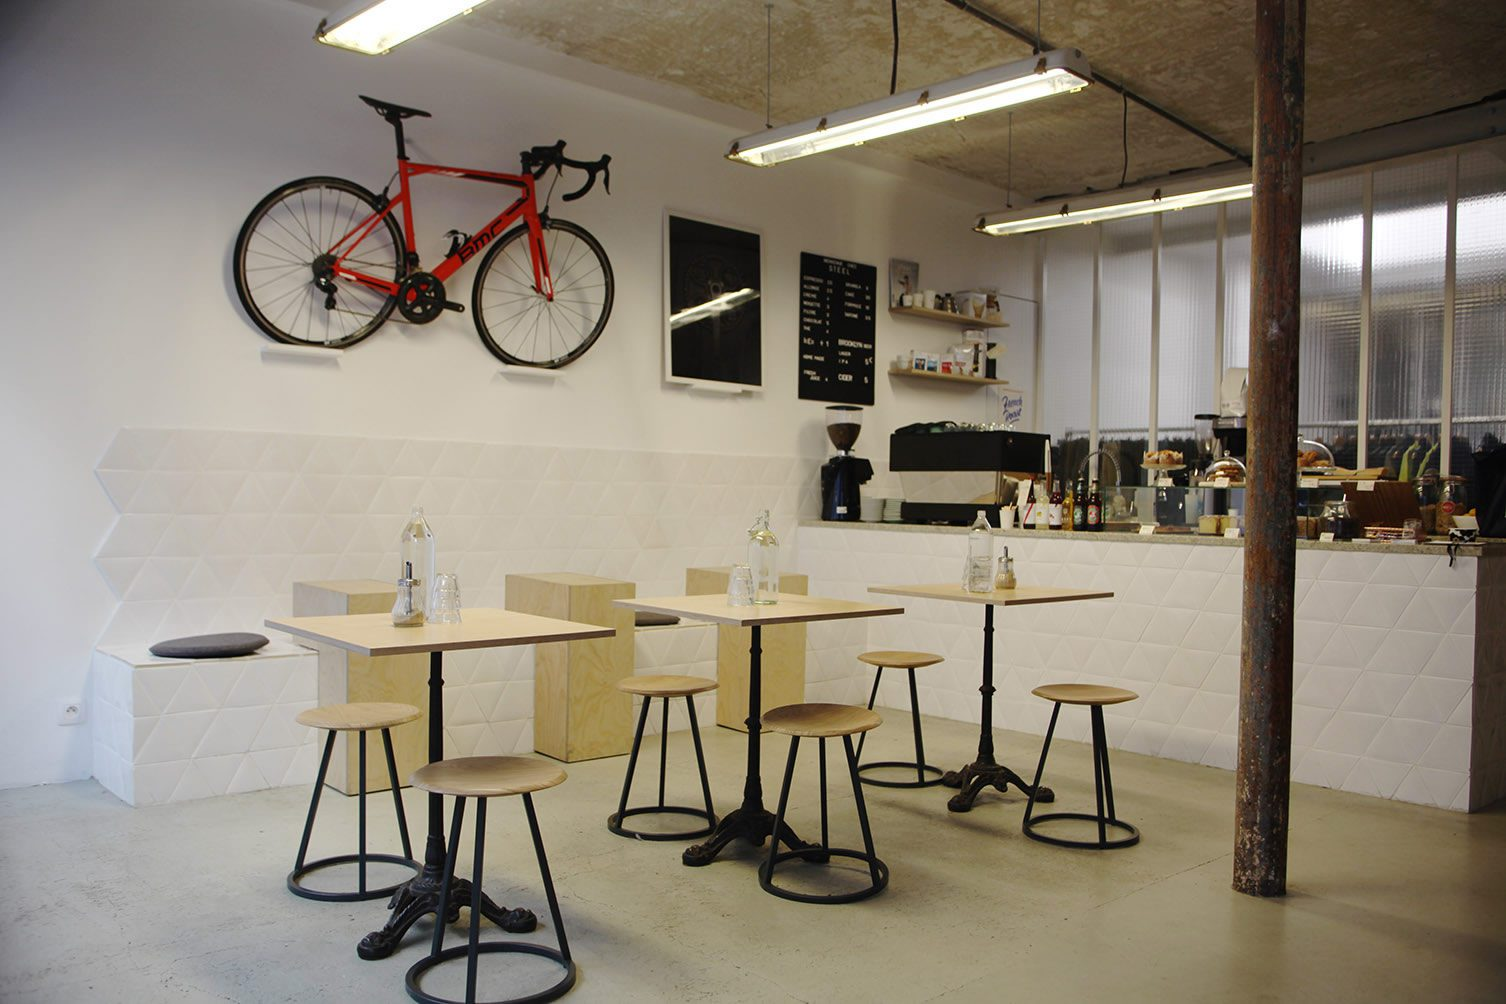 cae9b249a2f Steel Cyclewear & Coffeeshop, Paris